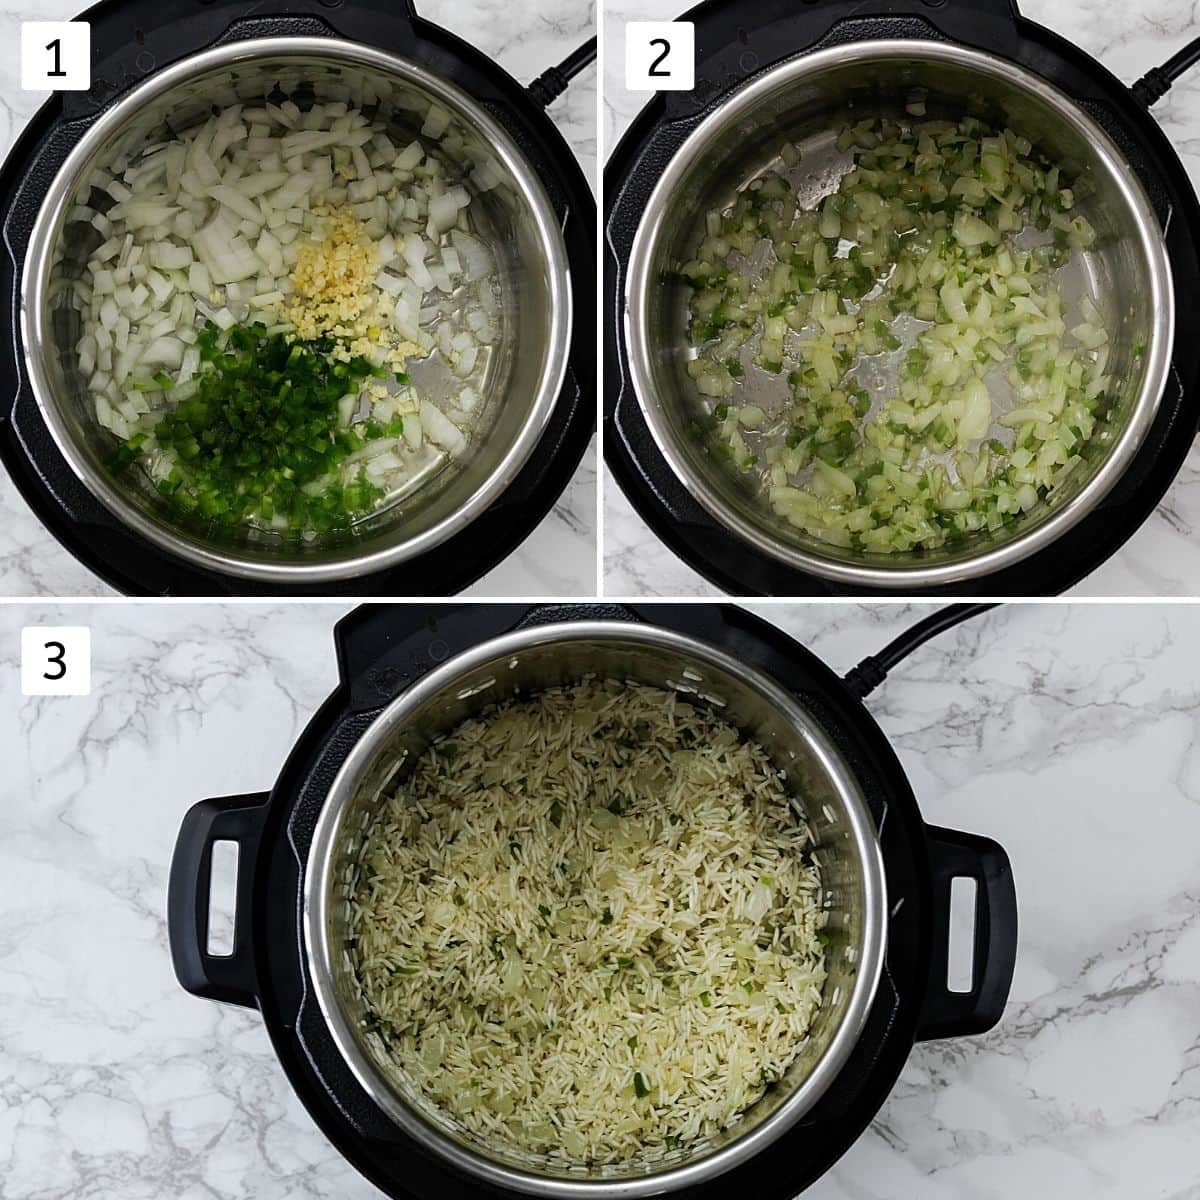 Collage of 3 steps showing sautéing onion, garlic and rice to make mexican rice.